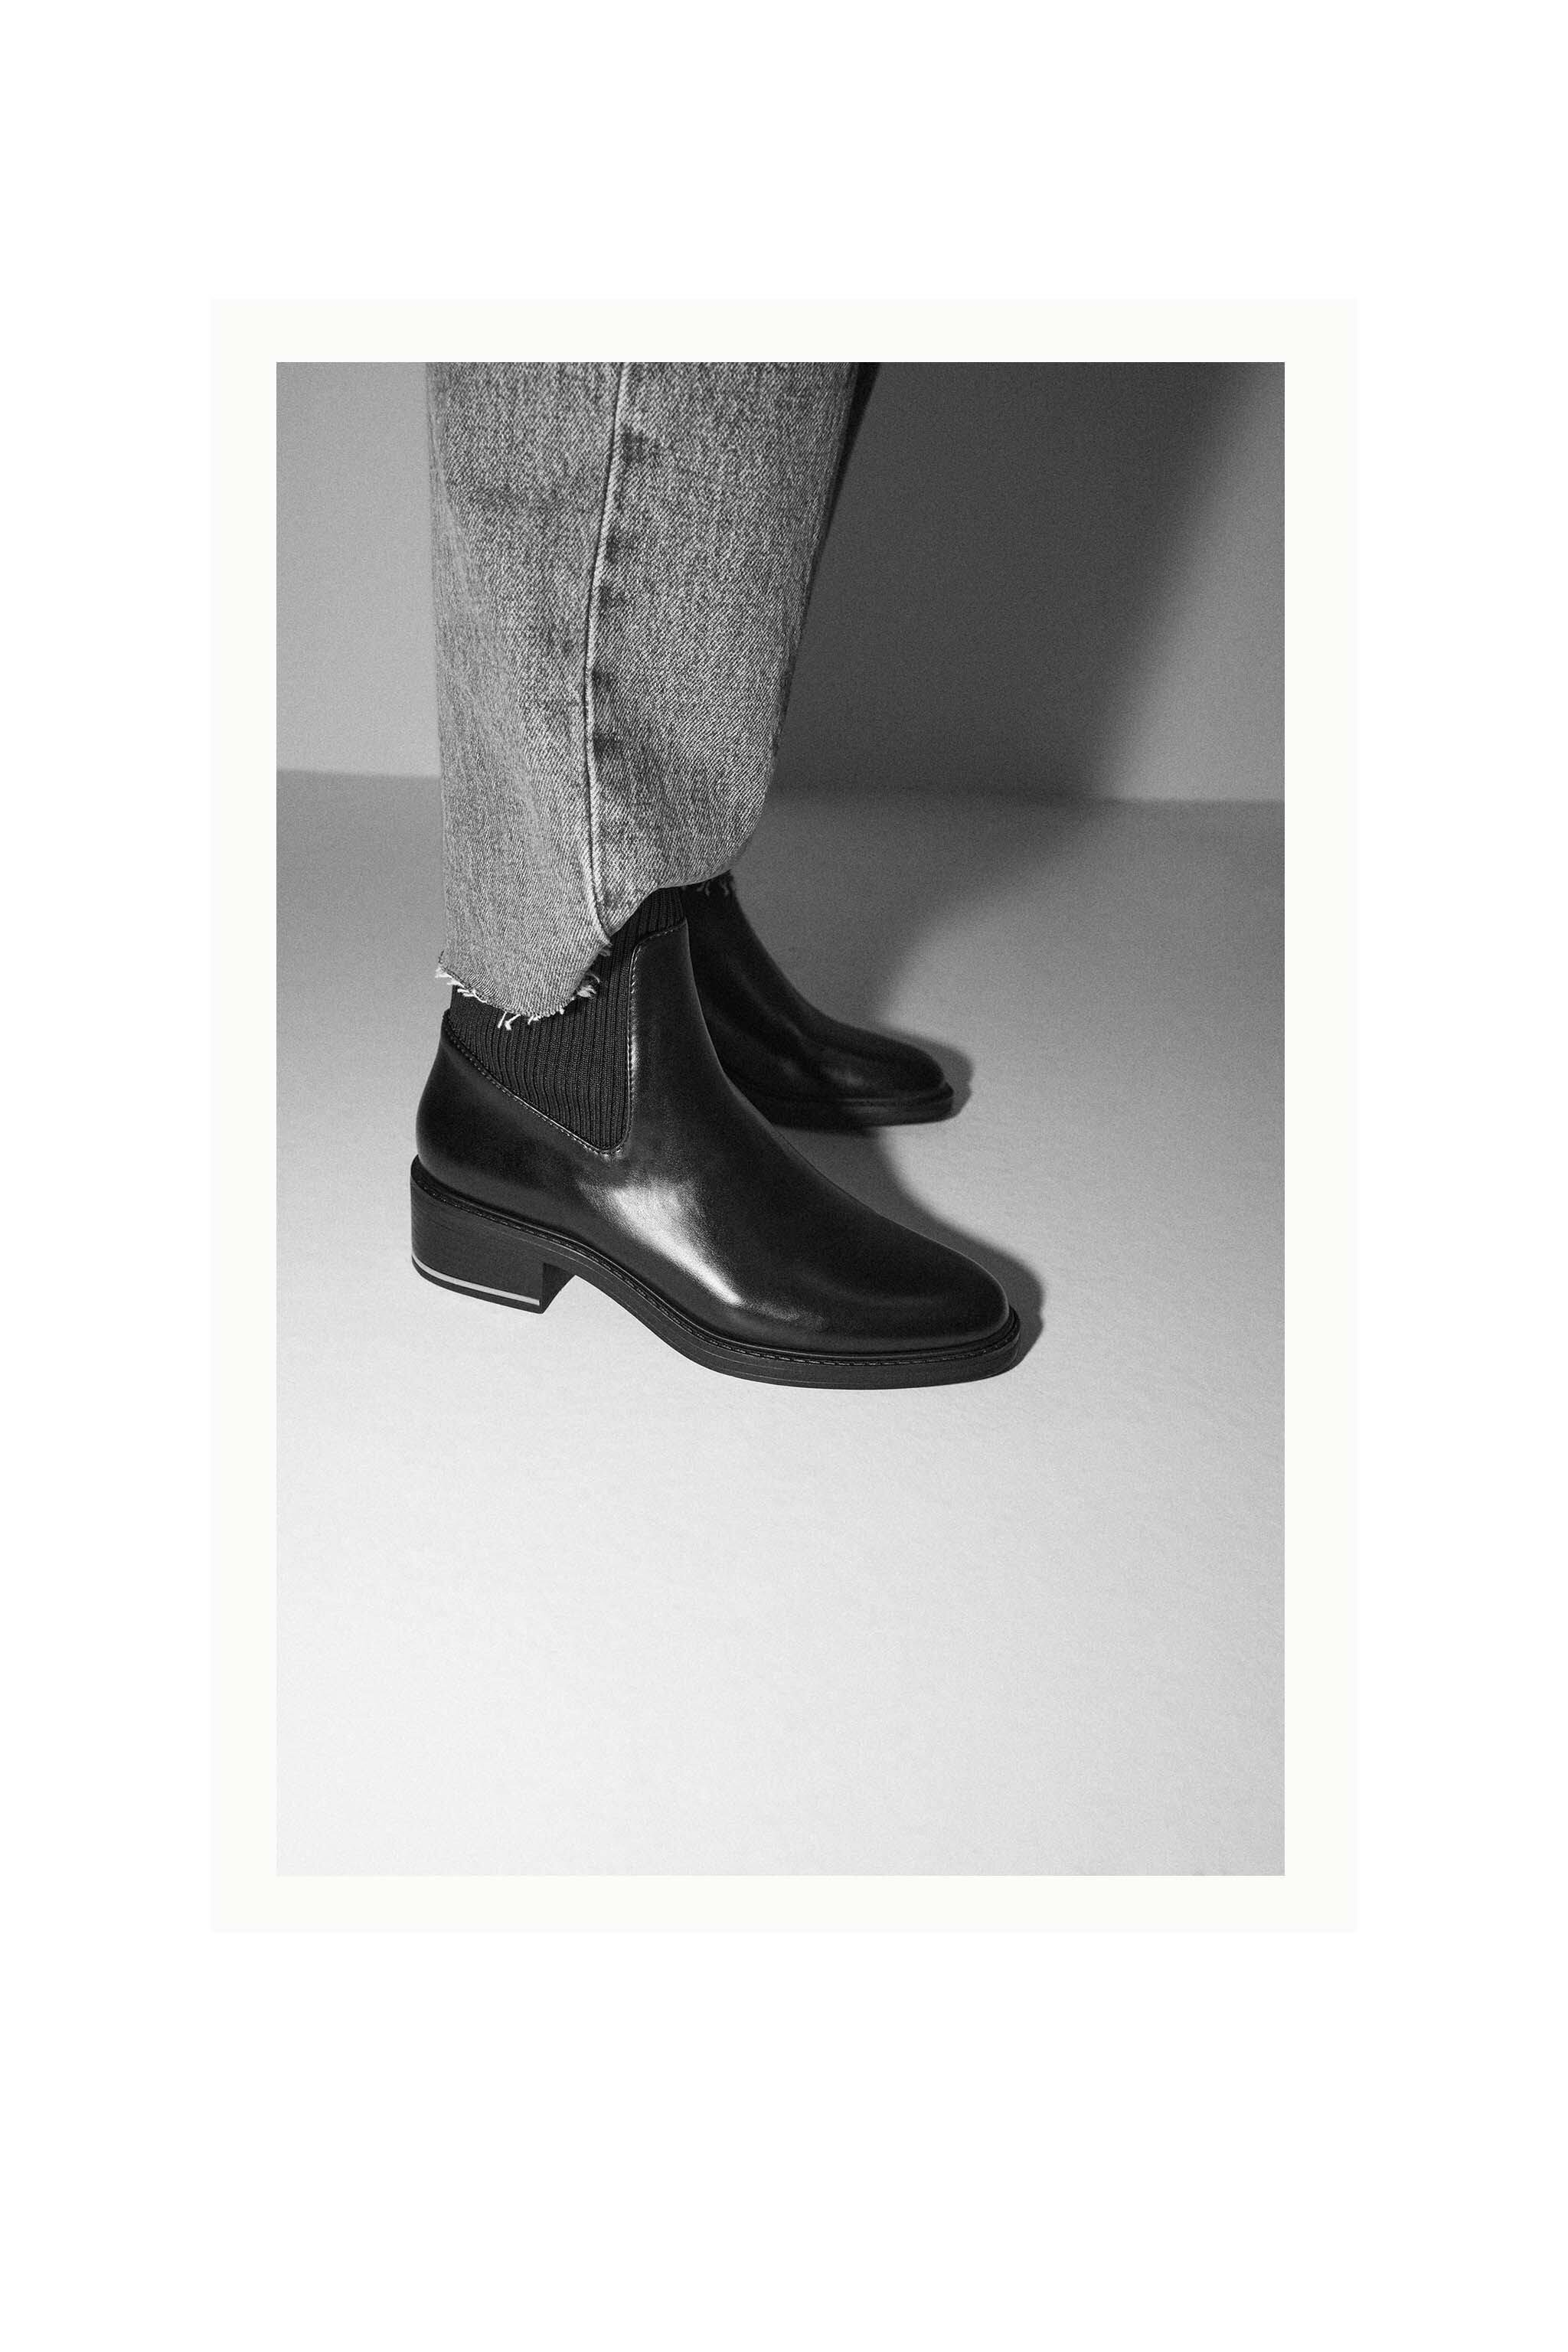 LOW HEELED SOCK-STYLE ANKLE BOOTS 6